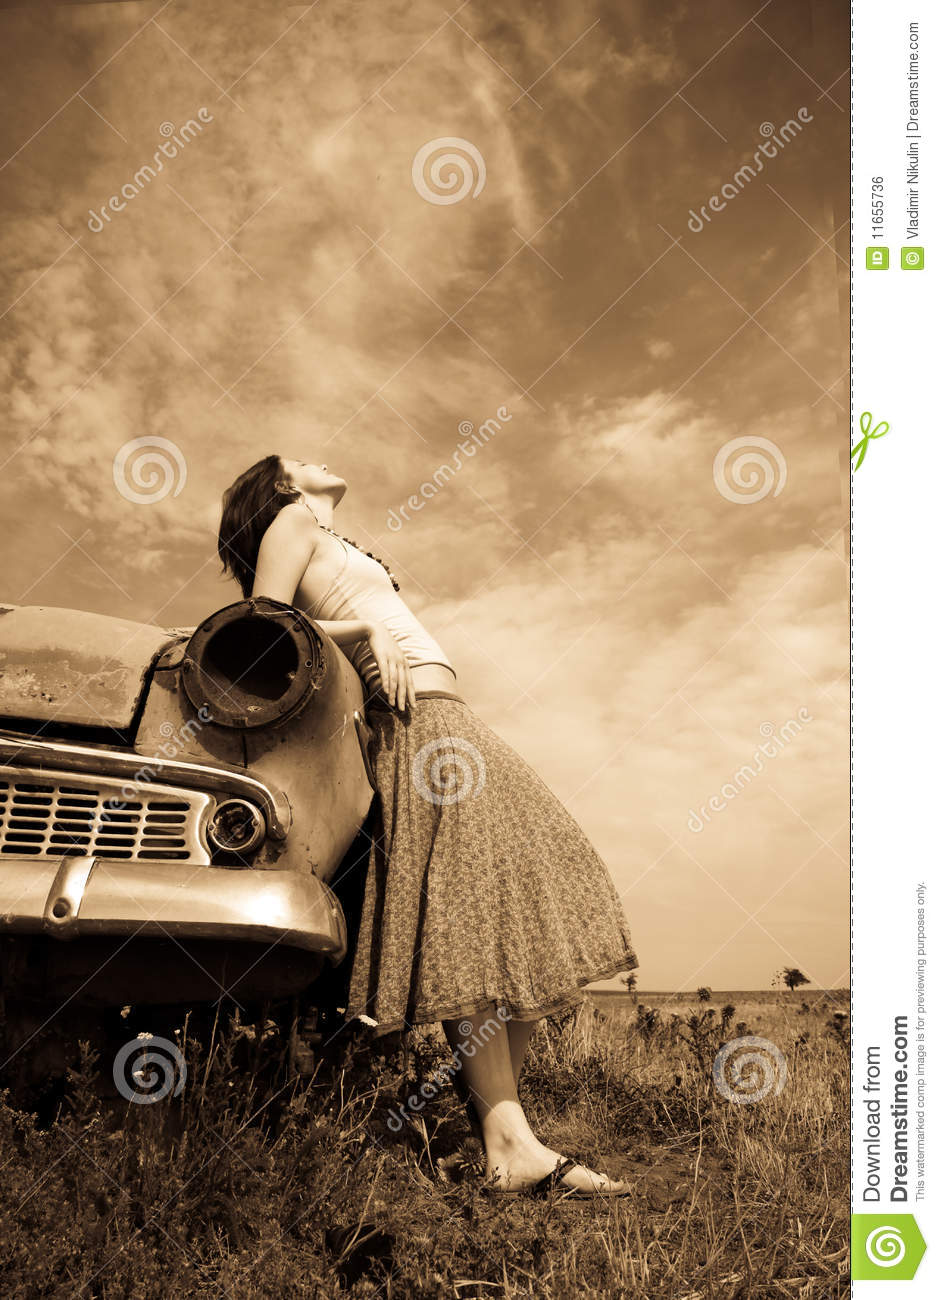 Girl near old car photo in yellow vintage style royalty for Vintage stuhle gunstig